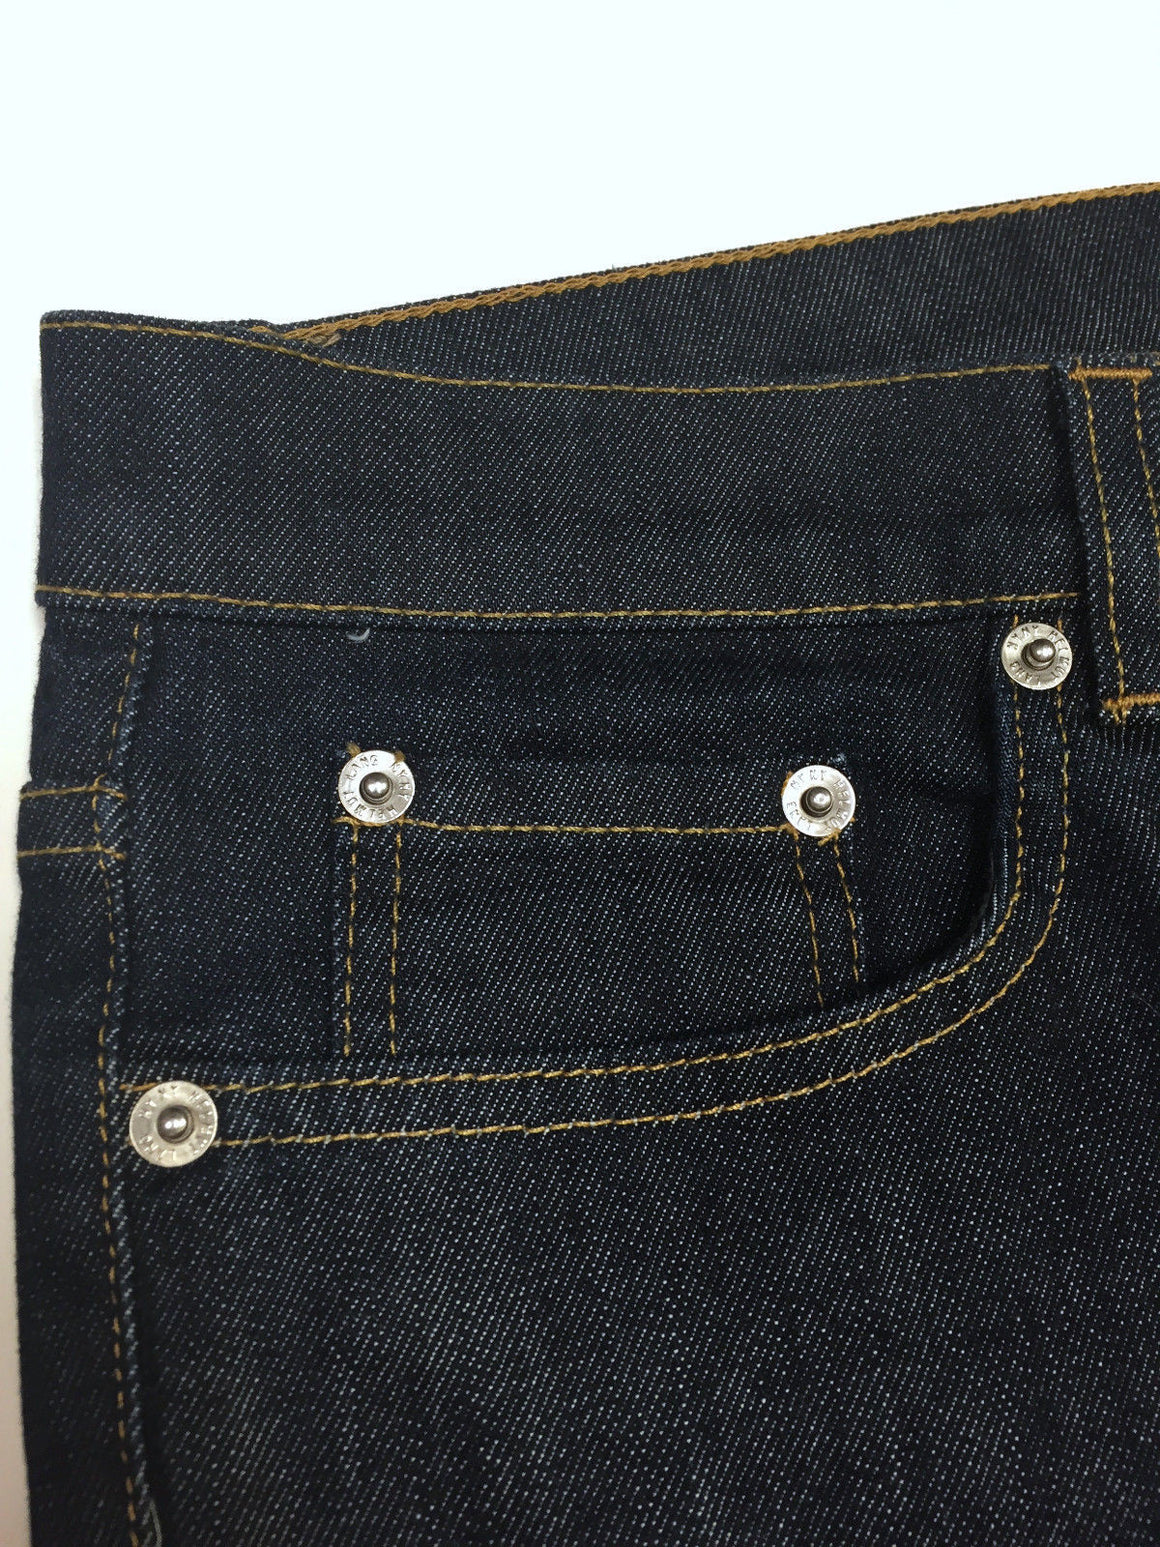 bisbiz.com HELMUT LANG Dark Blue Elastic Denim Low-Waist Slim-Leg Cropped Jeans Pants Size: Small - 27 - Bis Luxury Resale